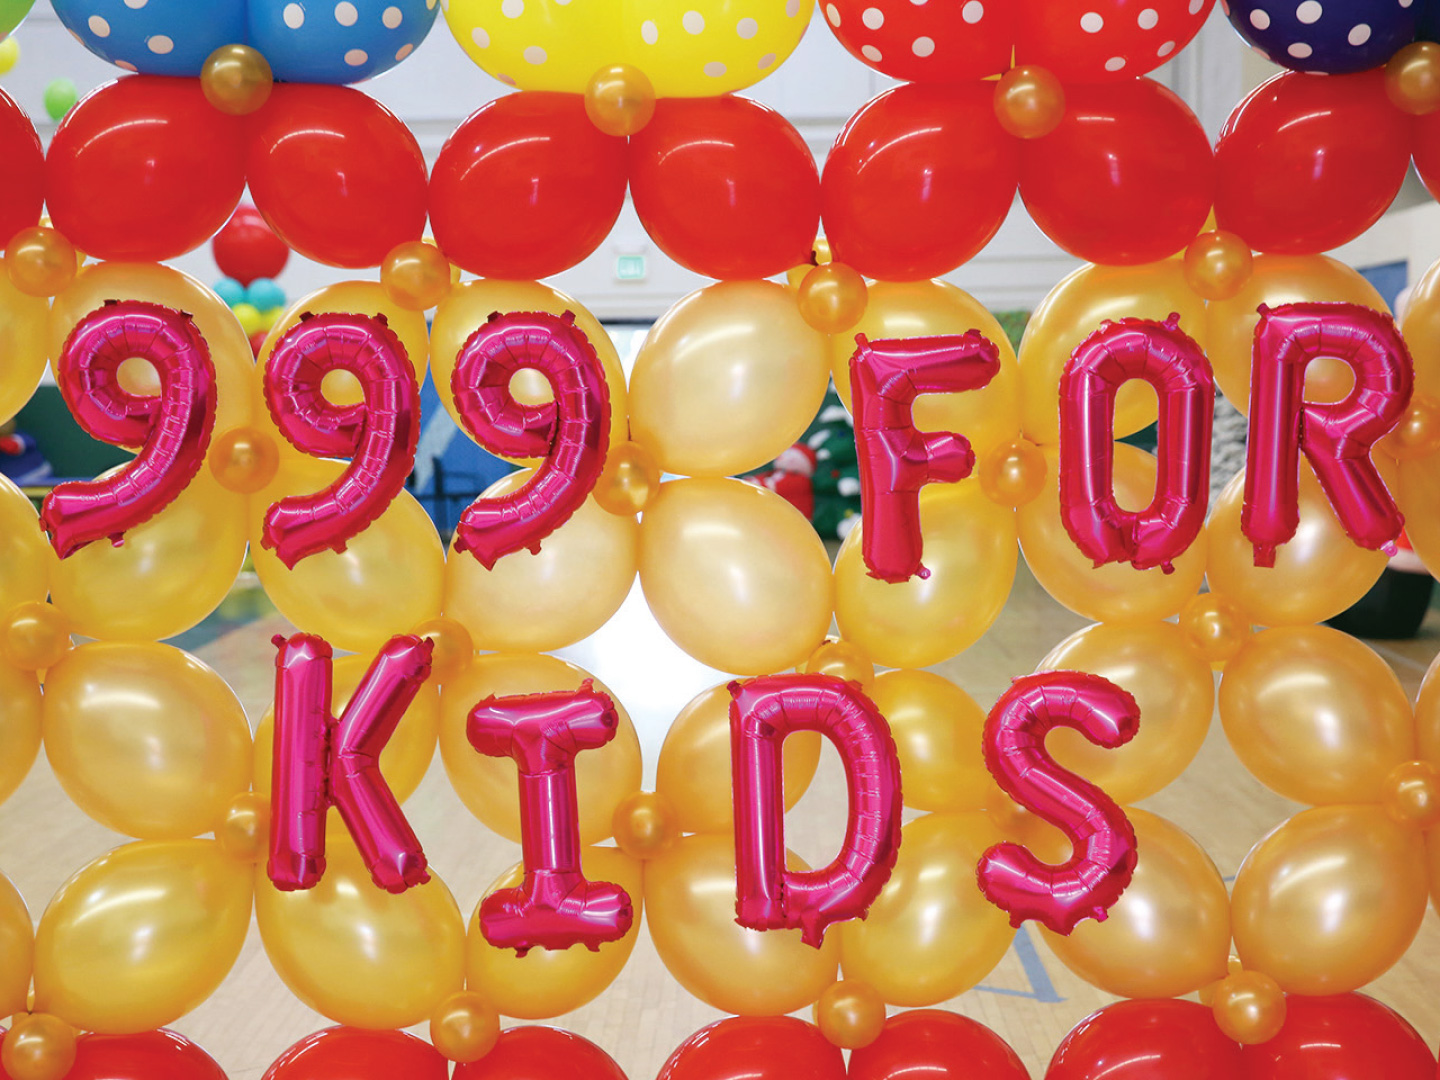 999-for-kids-2019-1